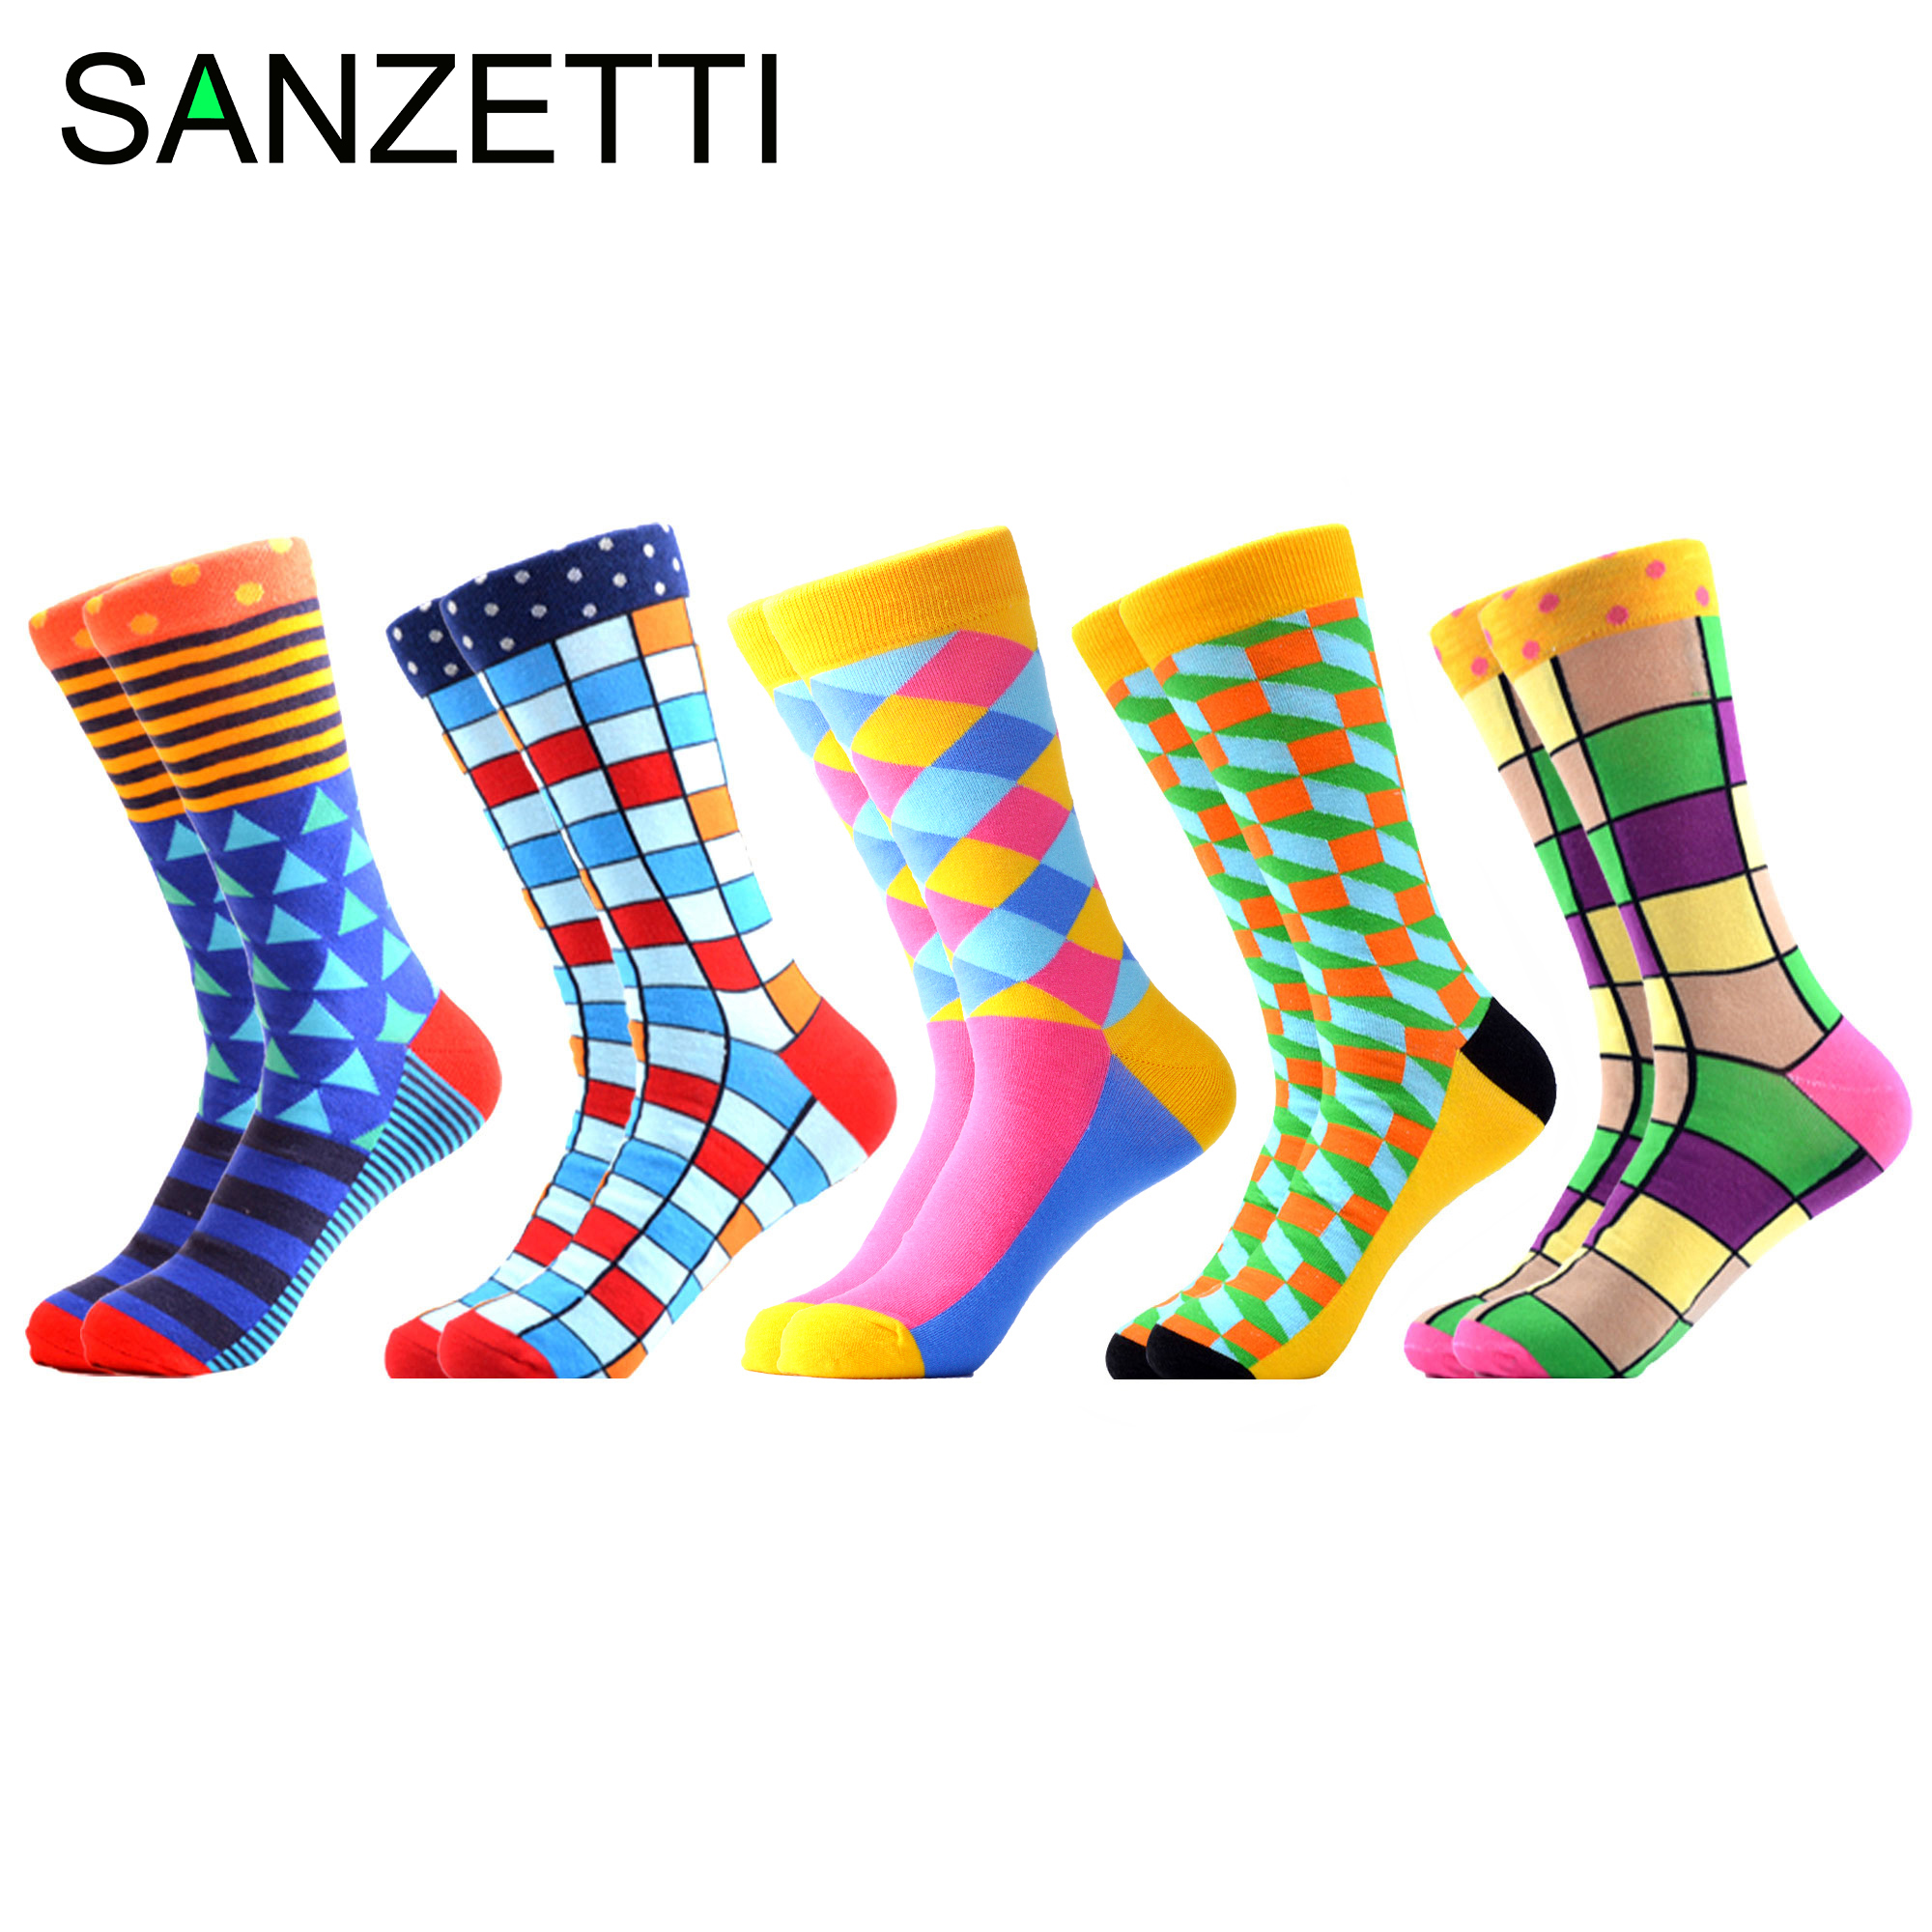 SANZETTI Combed Cotton Men Socks Funny Crew Colorful Grid Multi Comfy Dress Casual Sock Happy Winter Novelty Party Gifts Socks